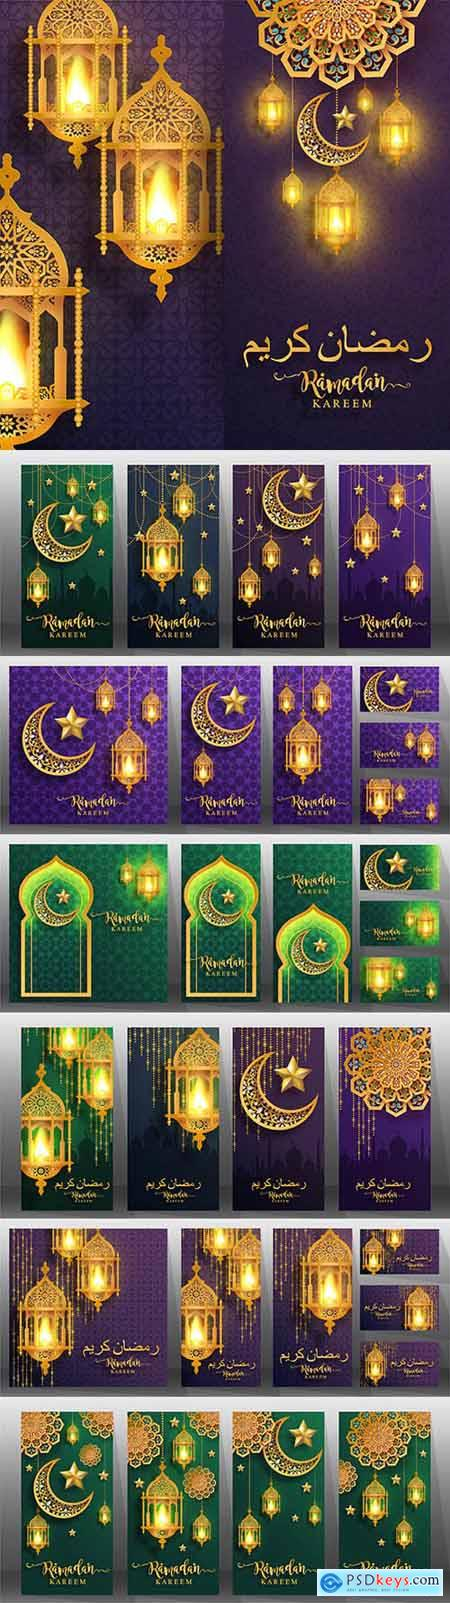 Ramadan Kareem decorative greeting banners design